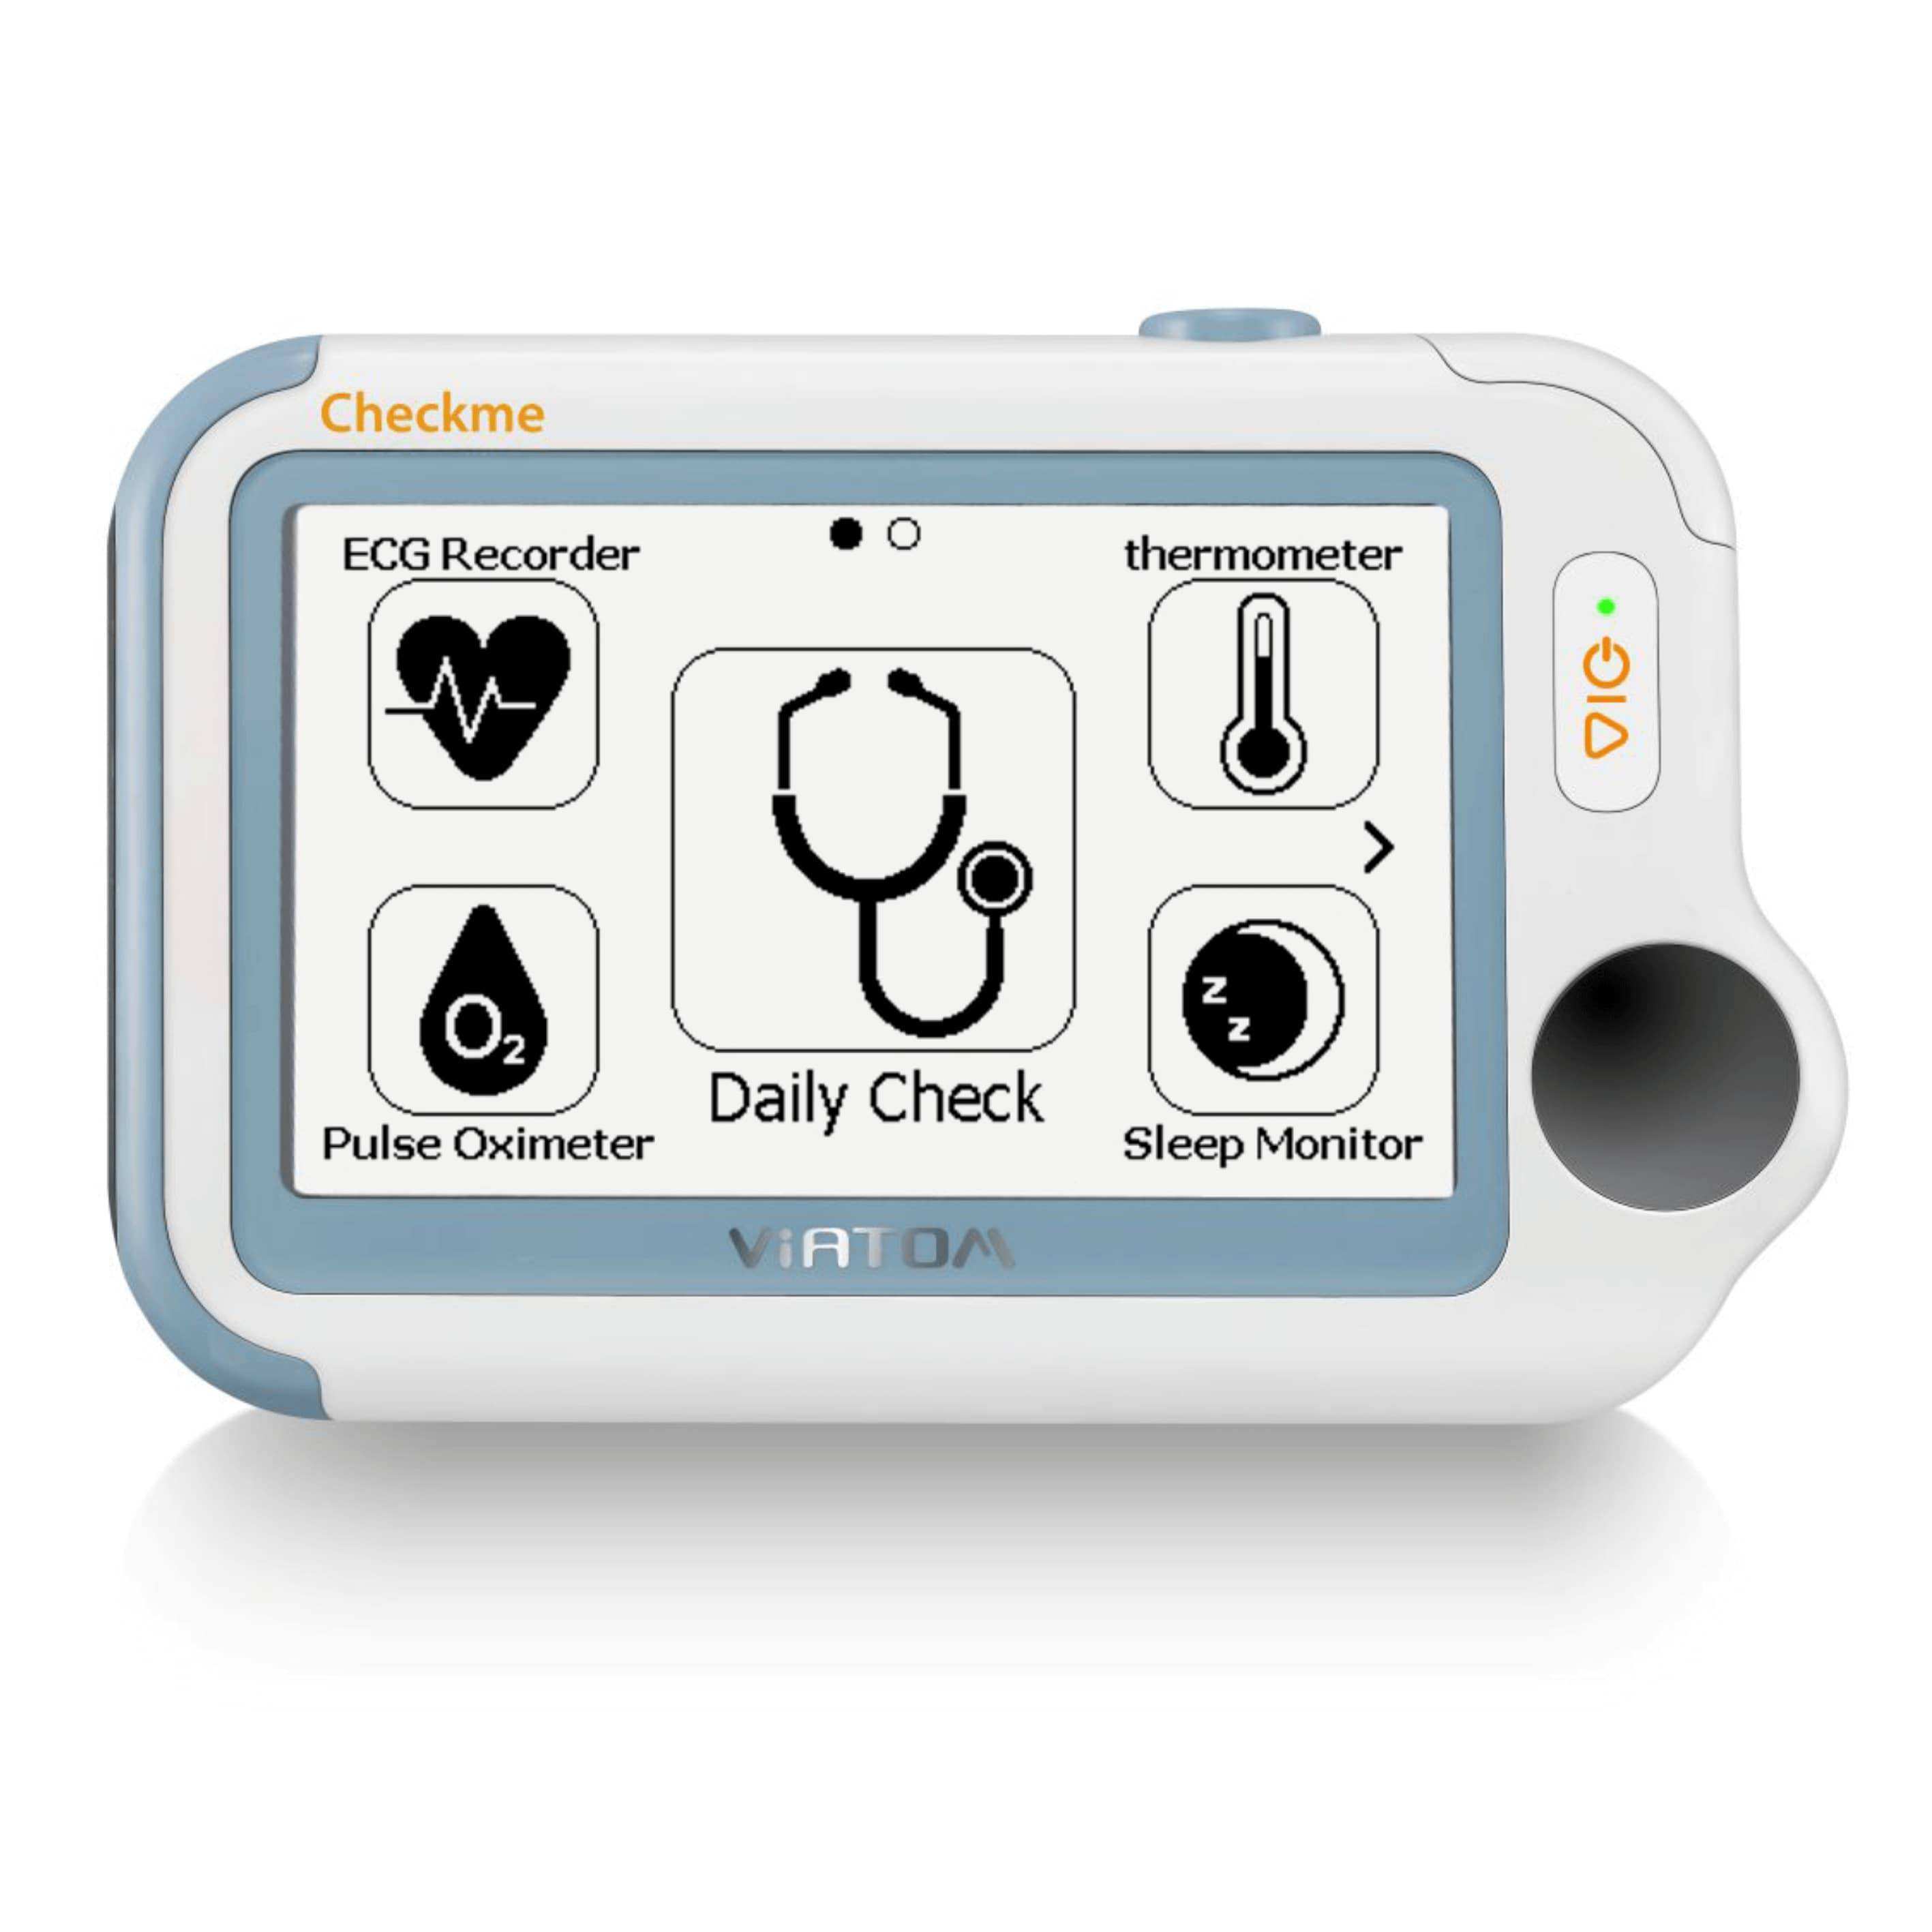 Wellue Caeckme pro vital signs monitor